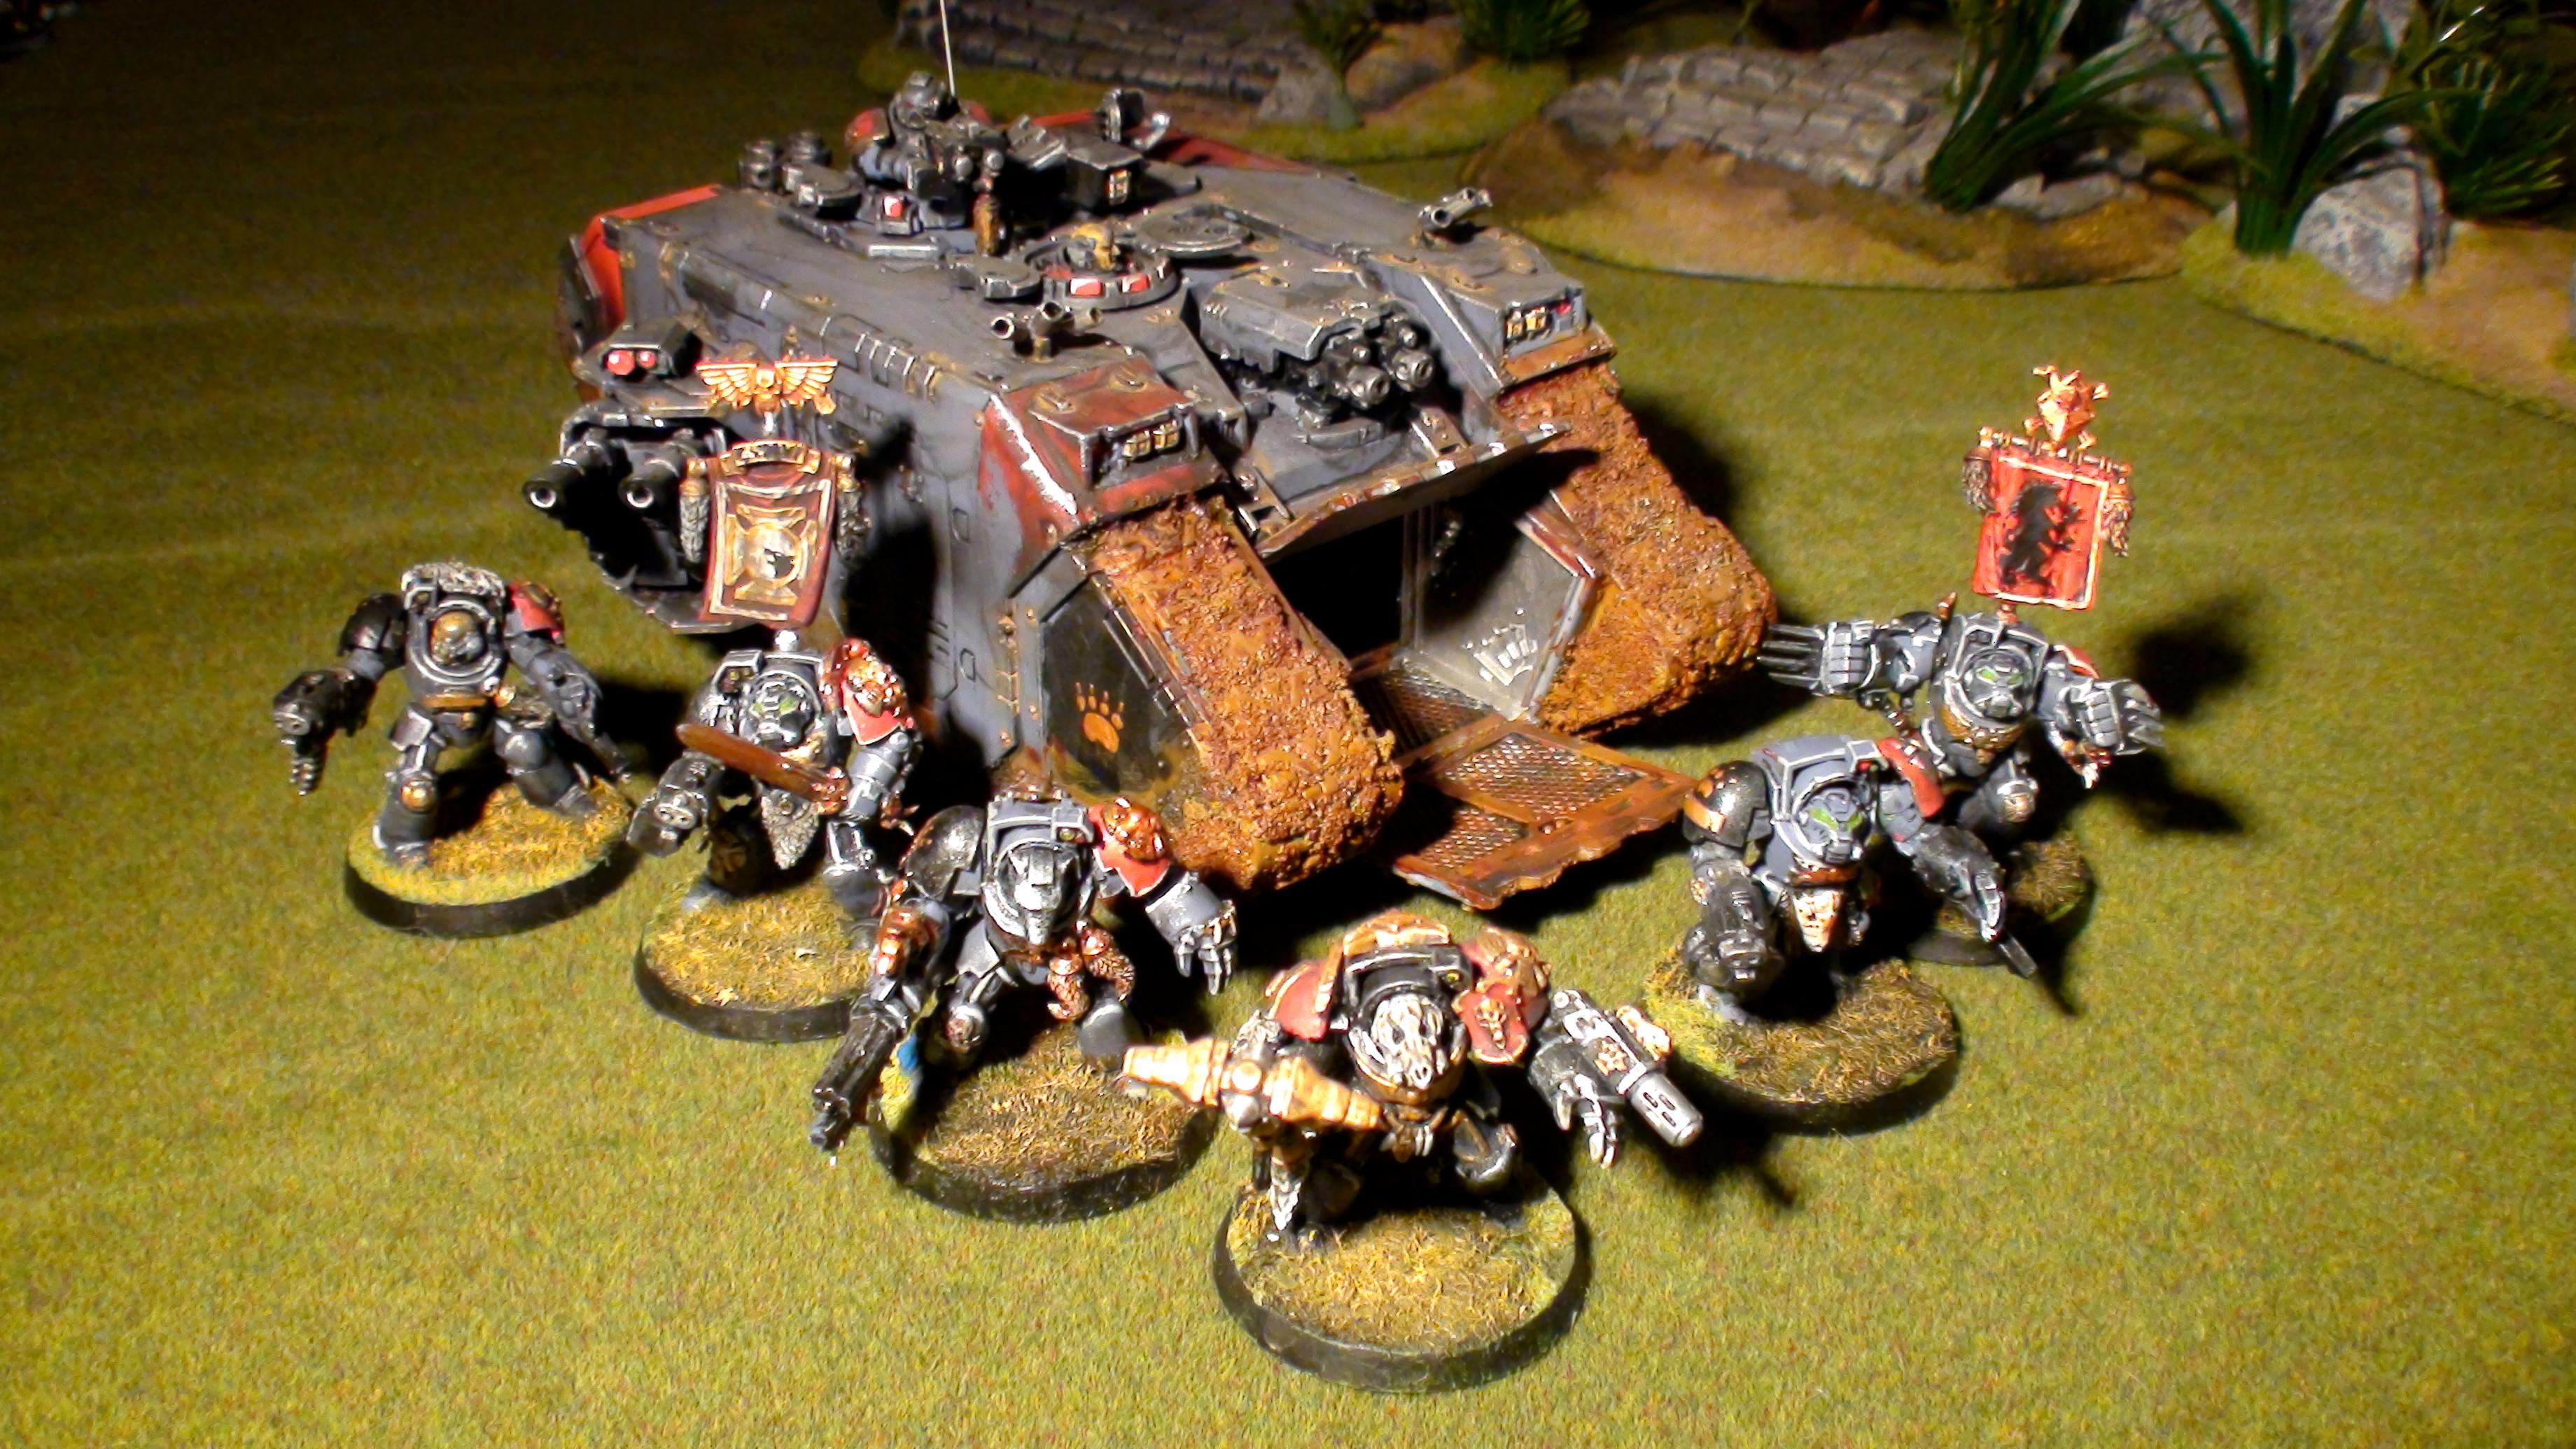 Army, Assault, Awesome, Collection, Drop Pod, Imperial Guard, Kasrkin, Land Raider, Painted, Space Marines, Space Wolves, Vindicator, Warhammer 40,000, Warhammer Fantasy